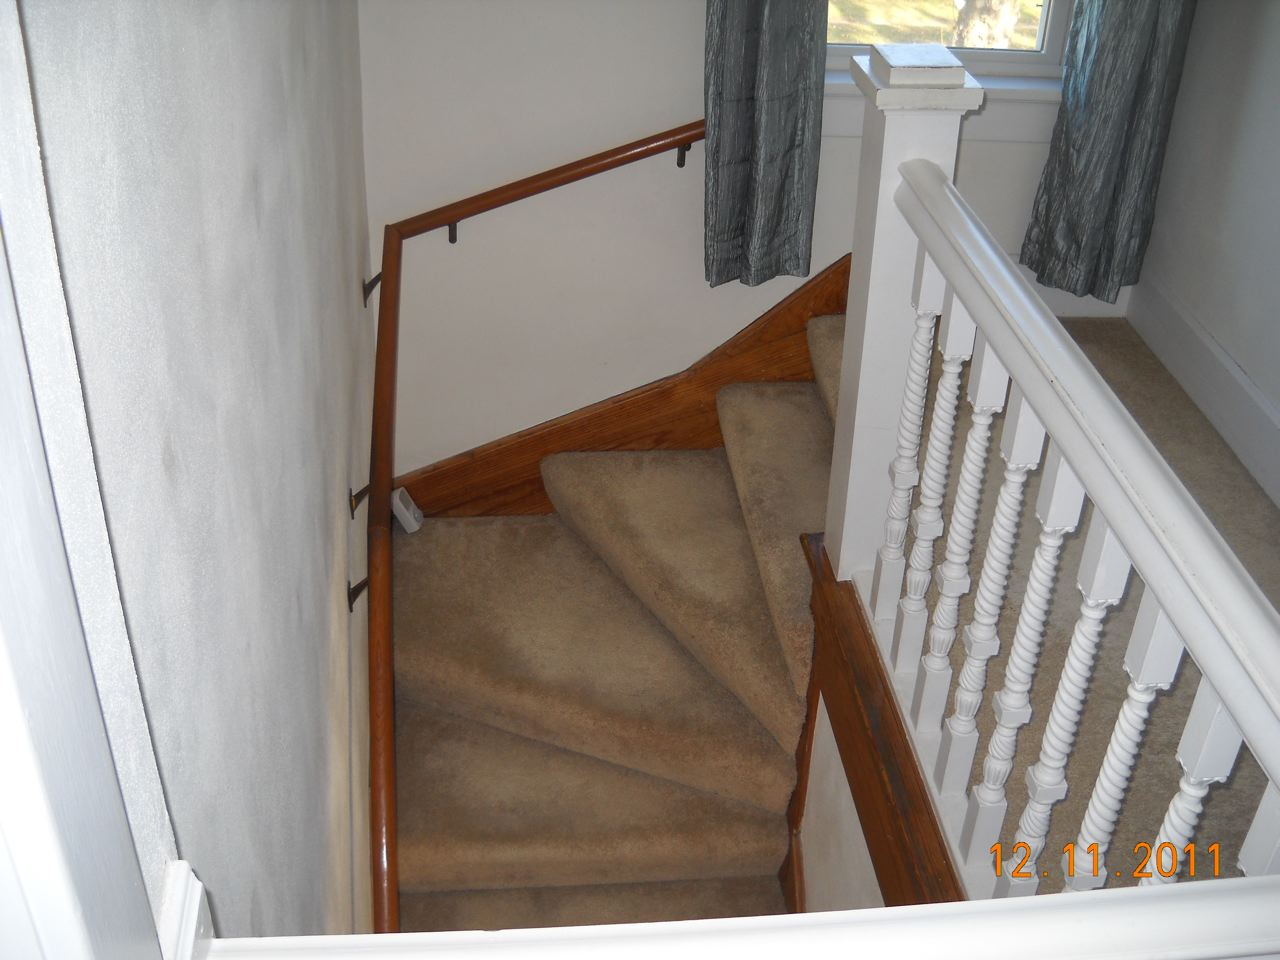 ... For FramingPro: How To Figure Out Winder Stairs Dscn2248